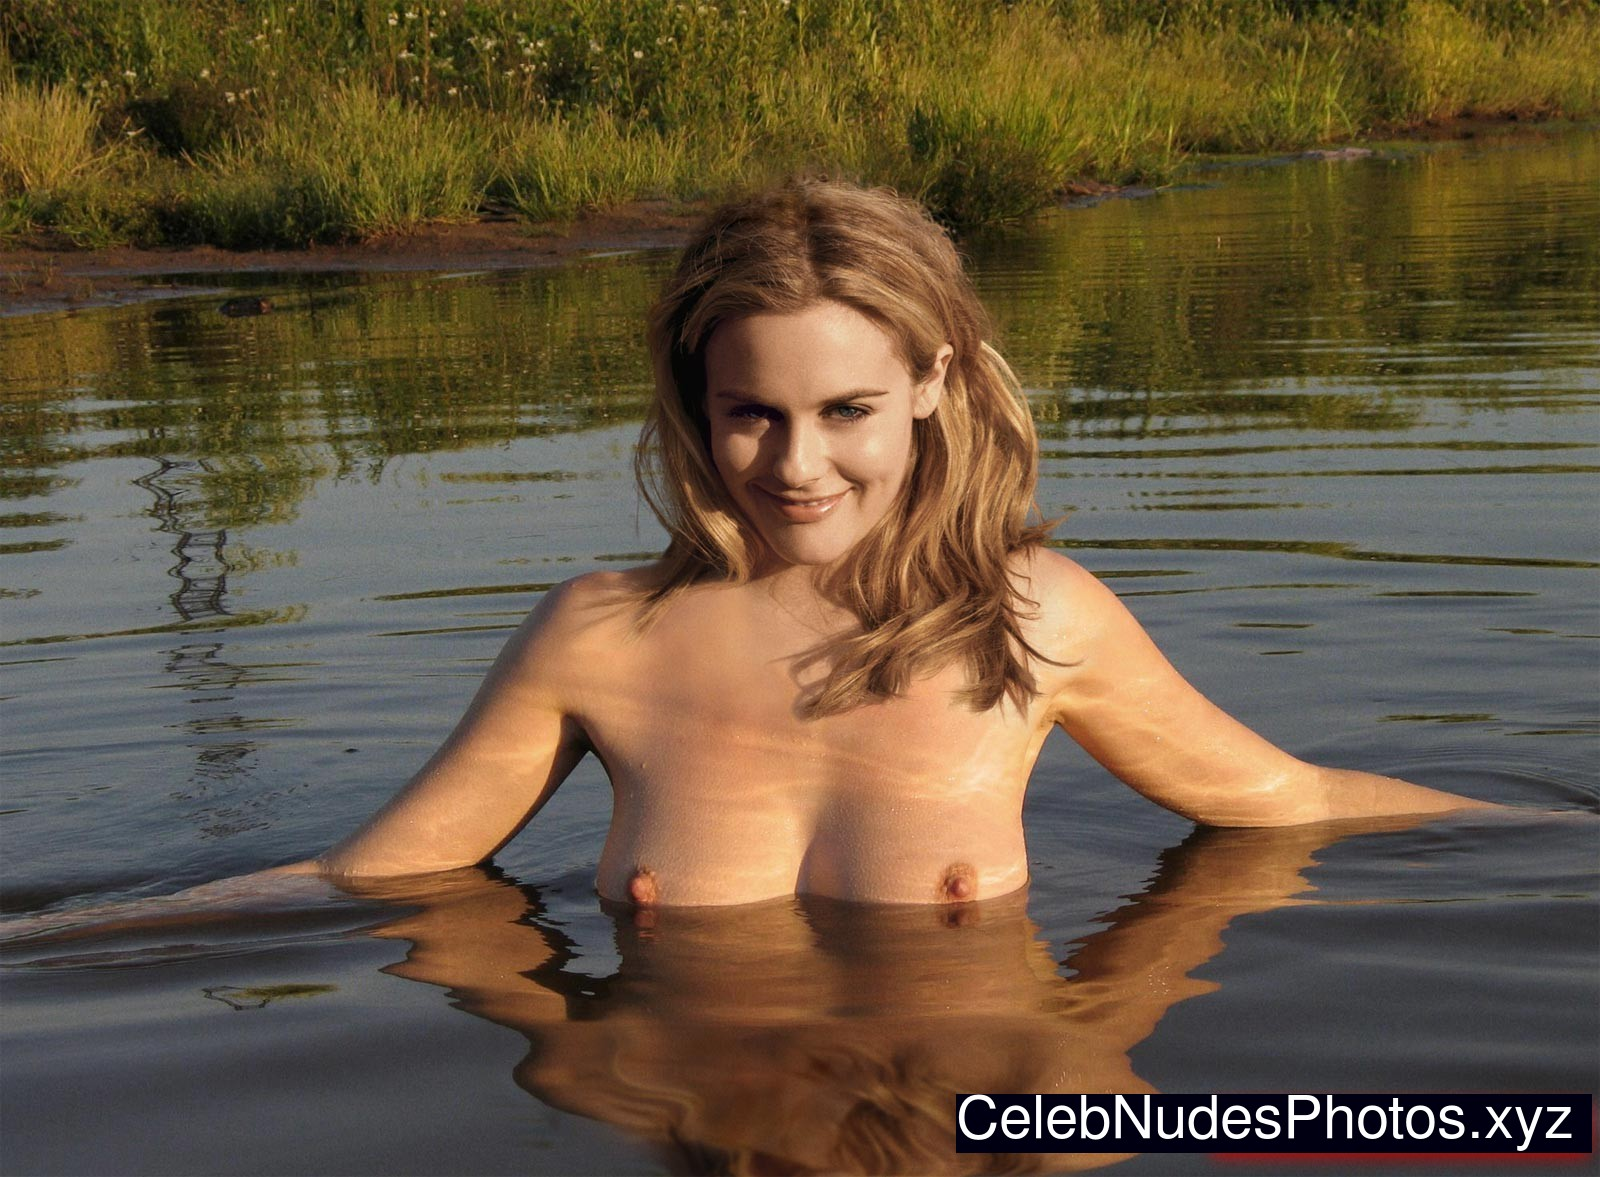 Naked Pictures Of Female Celebrity